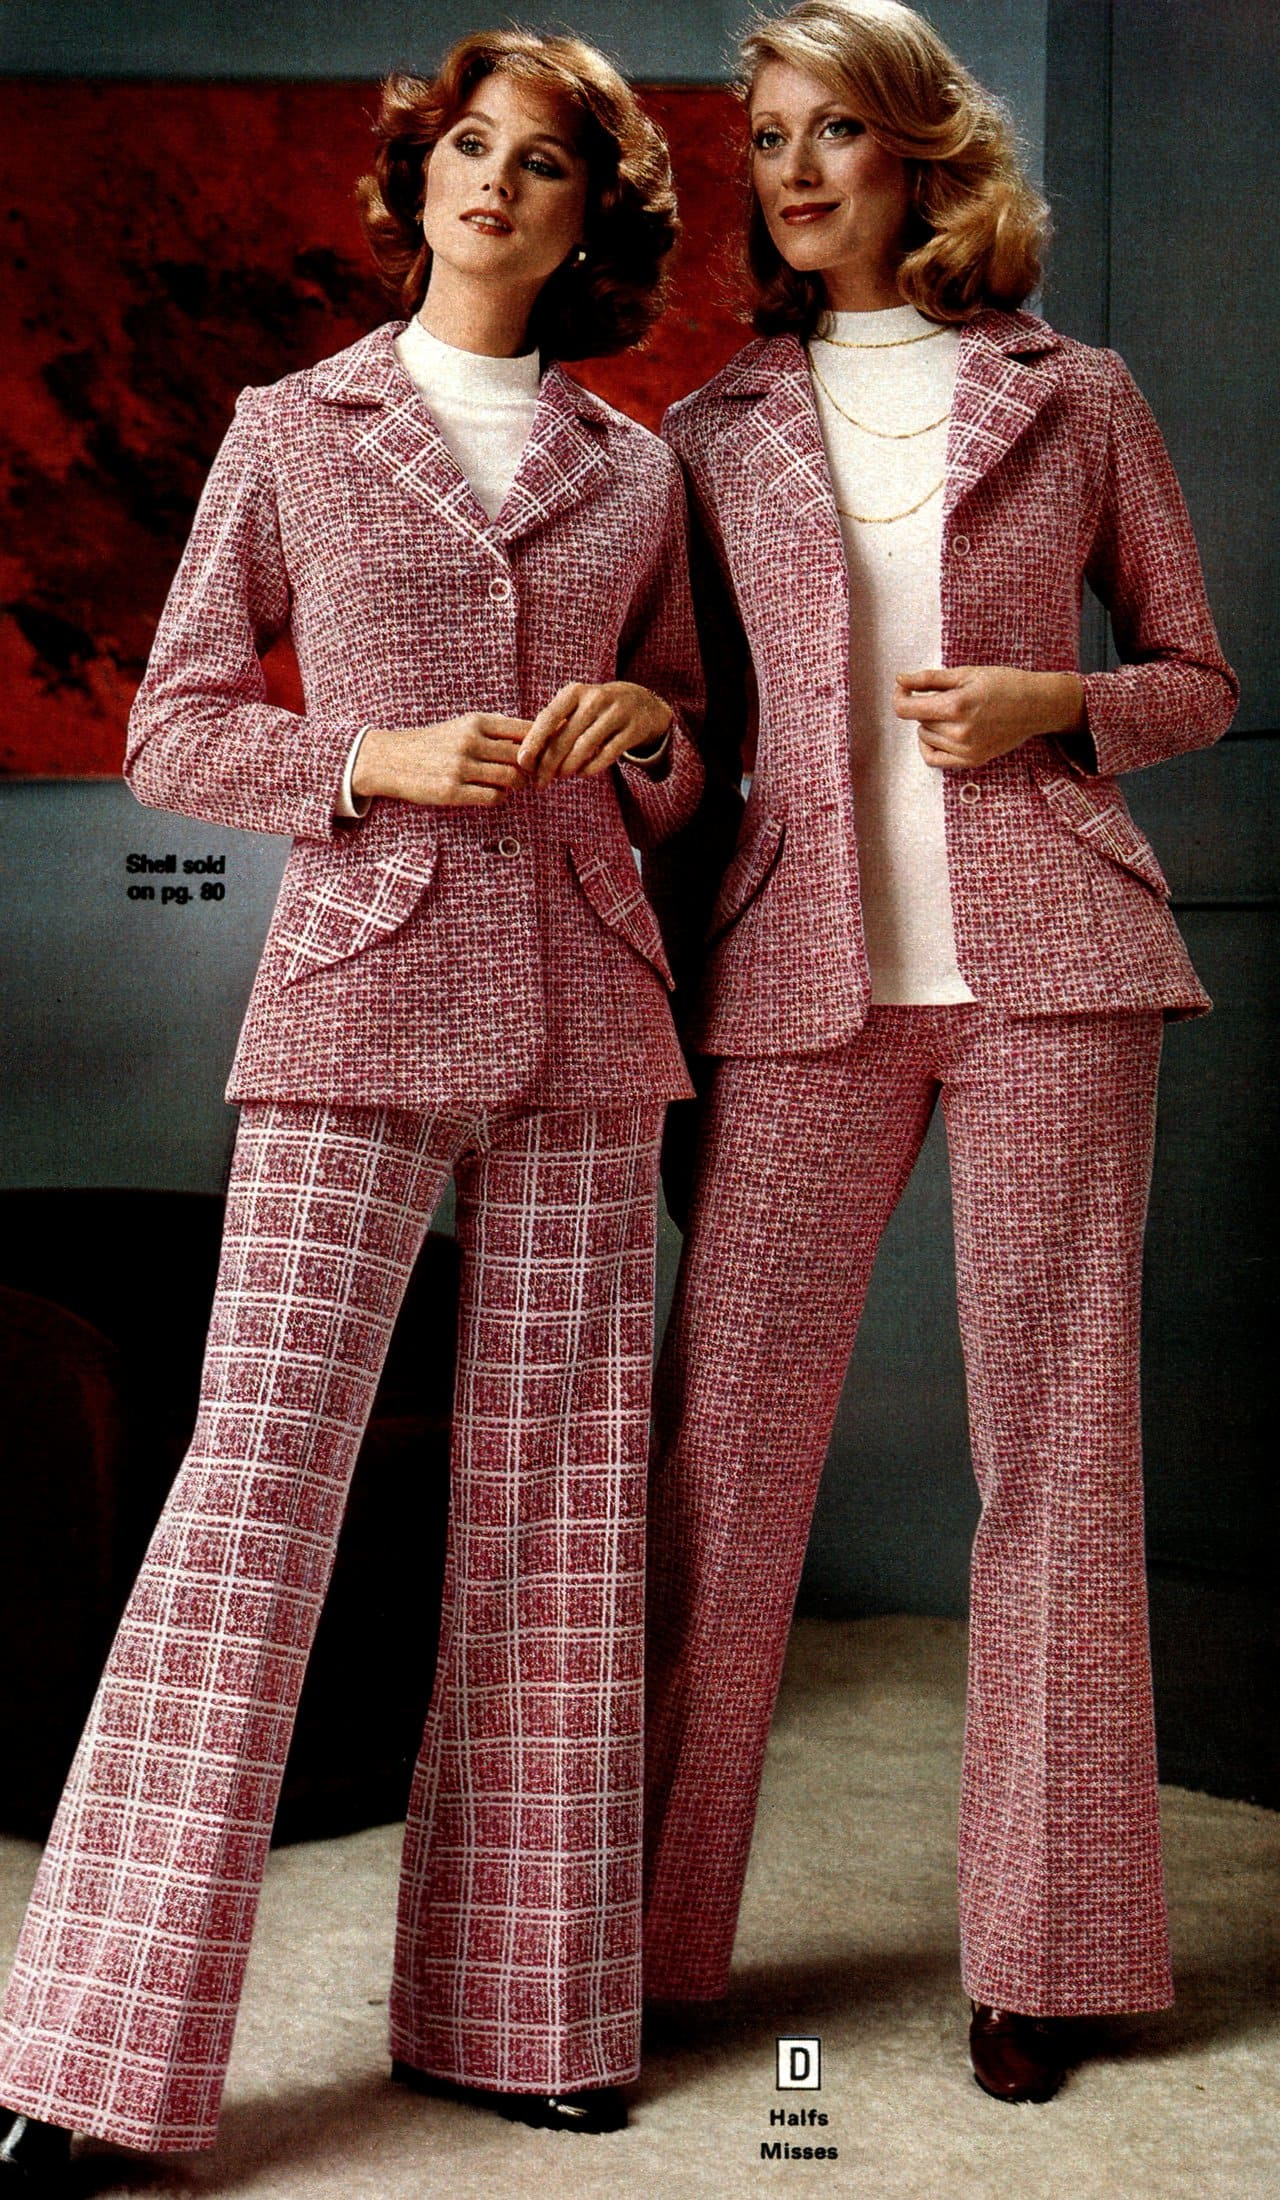 Vintage pink knit casual suits for women (1979)